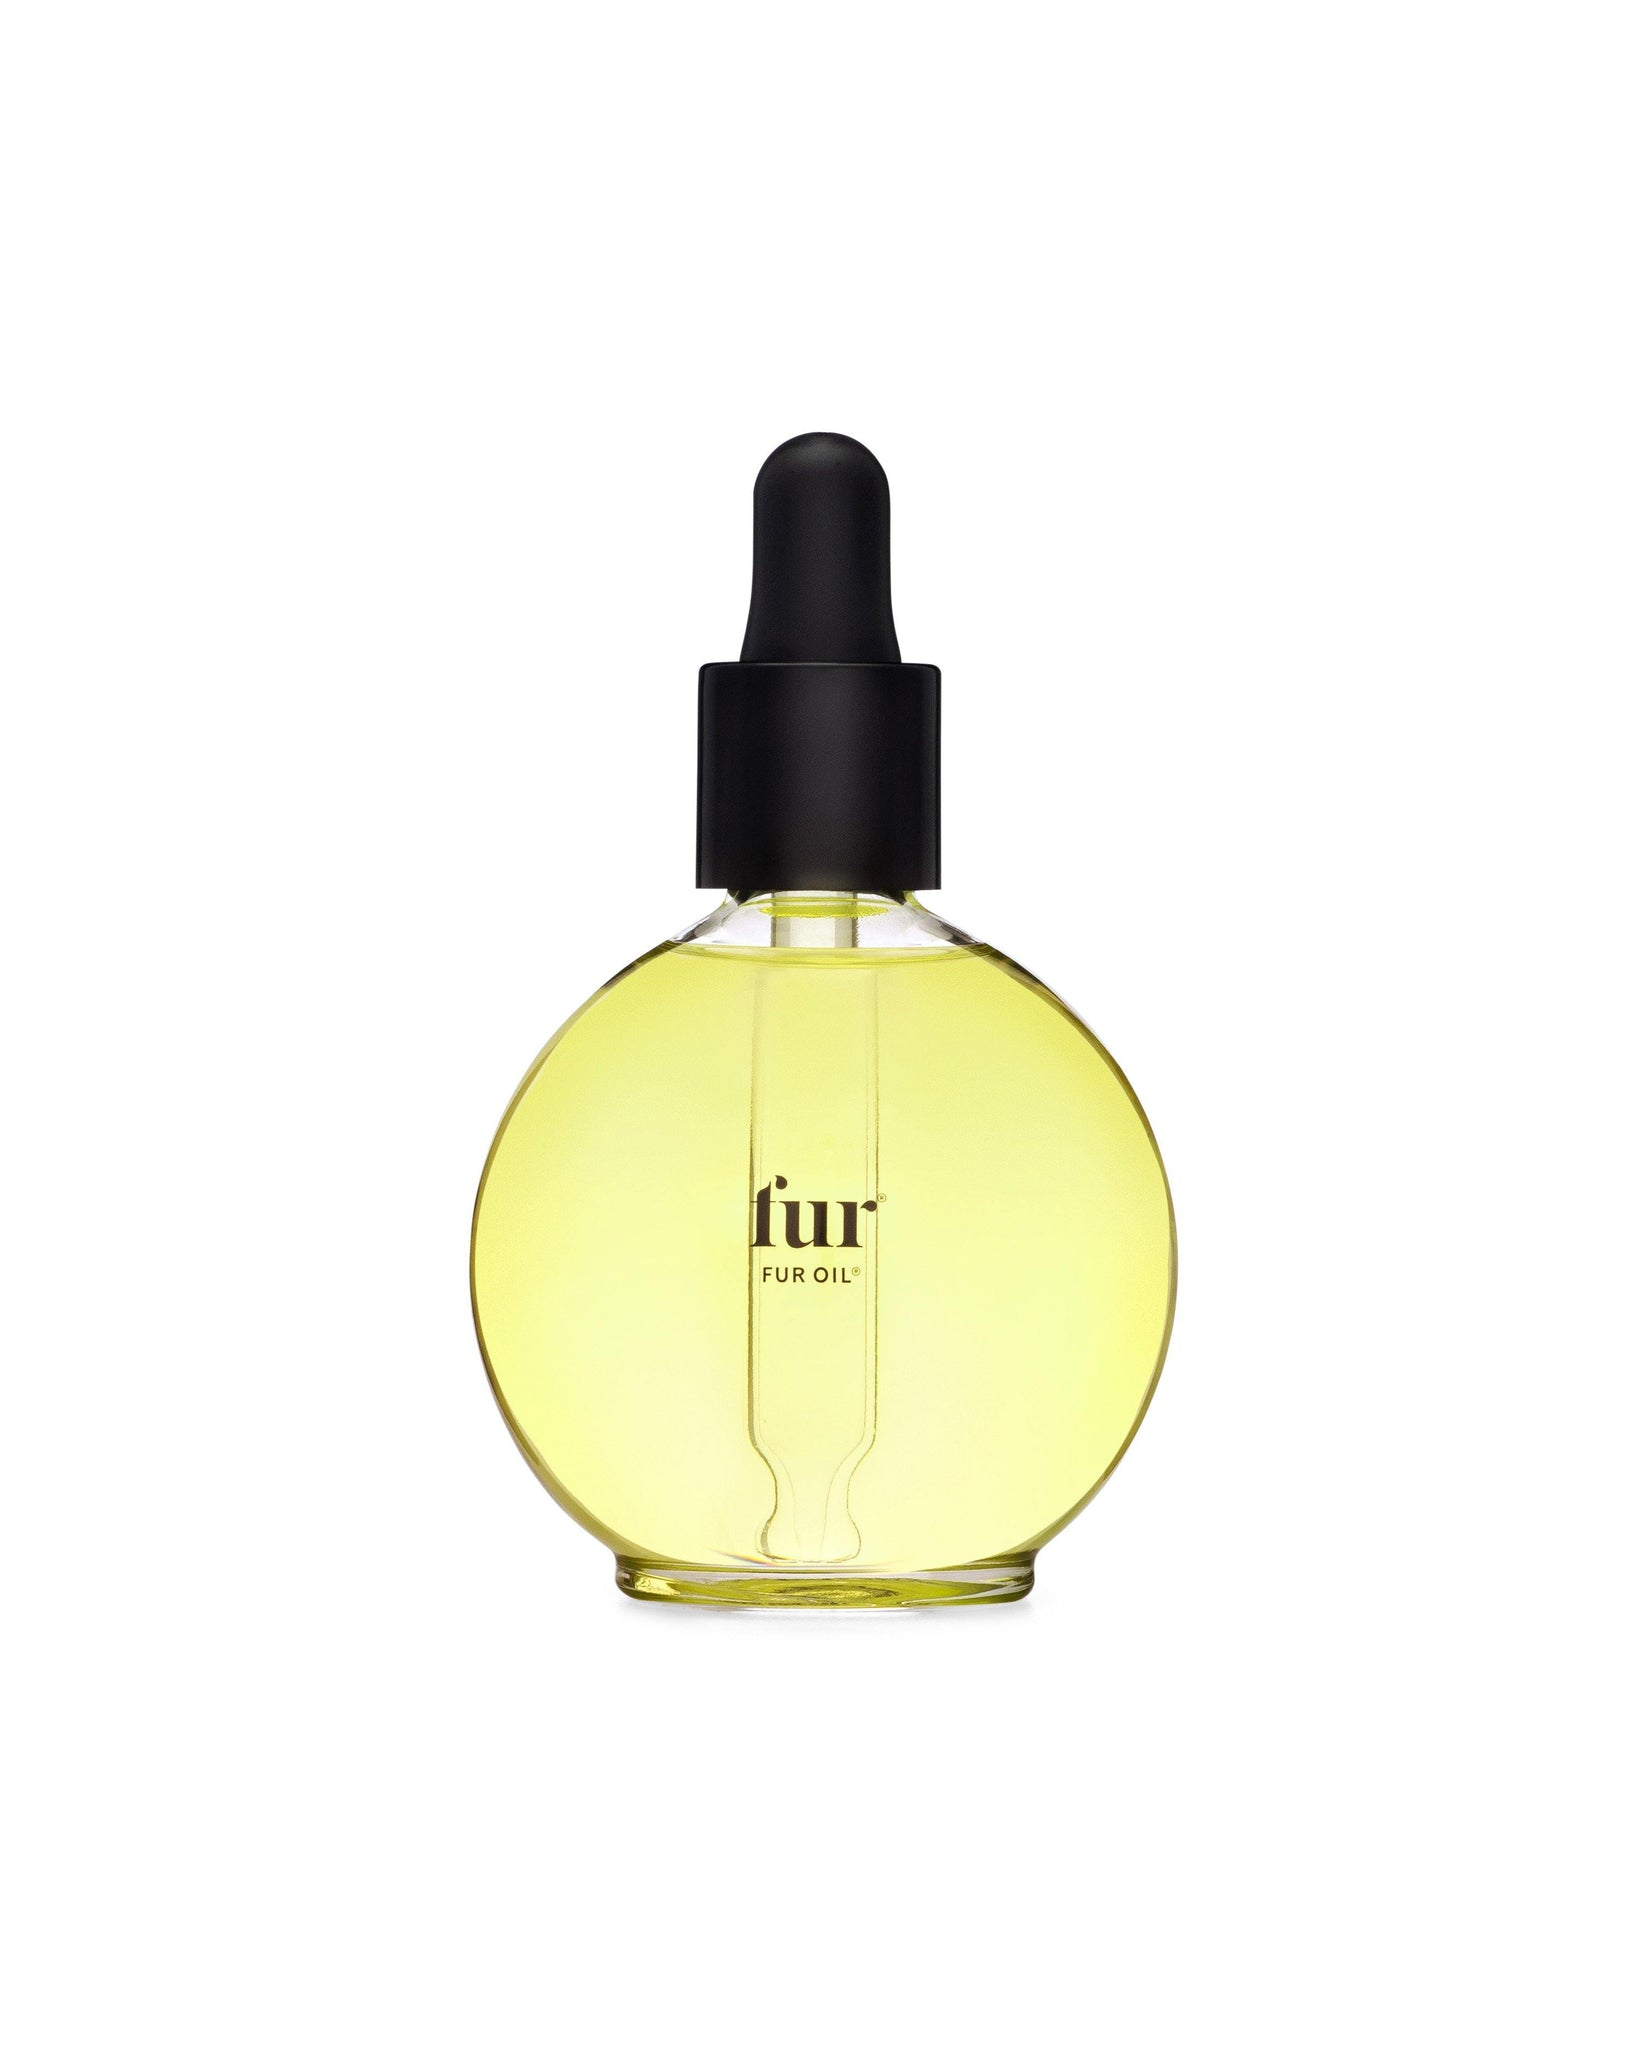 Fur Oil - Lulette Clean Beauty